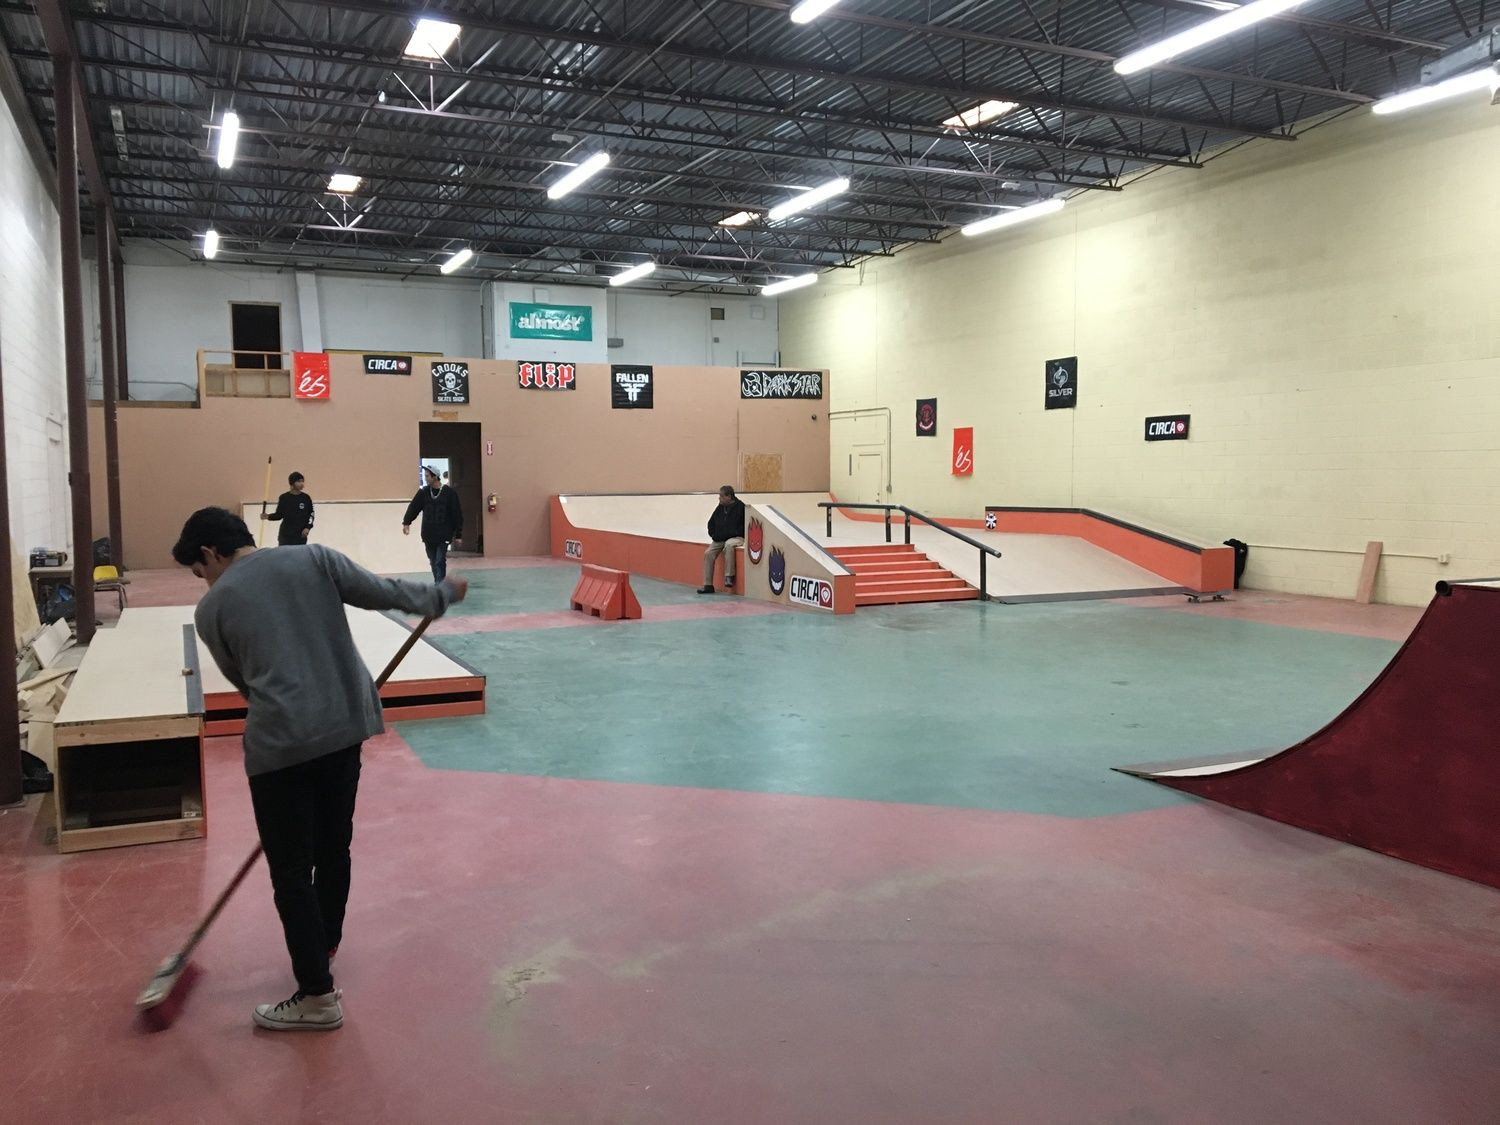 Crooks Indoor Skatepark Skate Park Skateboard Roller Derby